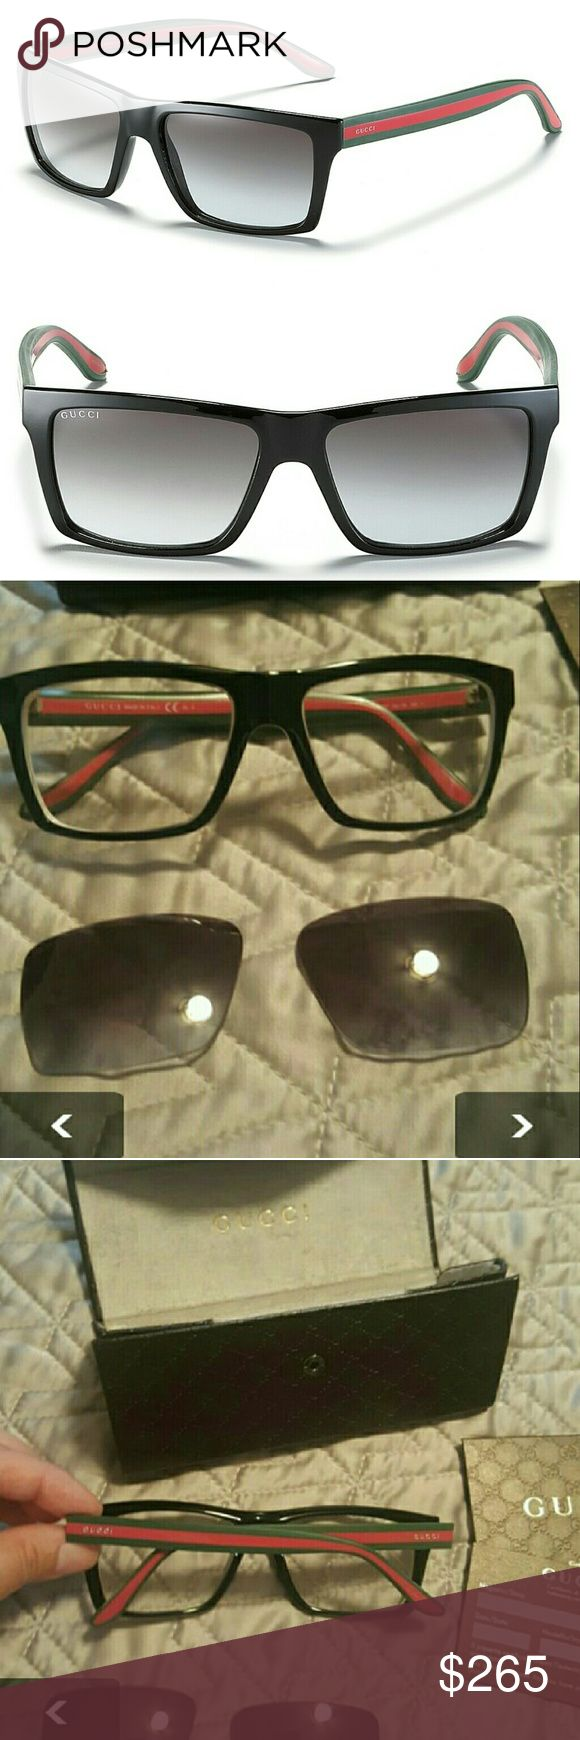 💞GUCCI SUNGLASSES 📣(READ DESCRIPTION) * I SHIP NEXT DAY * PRICE IS FIRM  * CONDITION 8/10 * AUTHENTIC  * GENTLY WORN (PLEASE BE AWARE THAT THESE ARE USED) * WILL HAVE PRESCRIPTION LENSES TAKEN OUT. * NO MODELING  COMES WITH: * CASE  * CLOTH  * AUTHENTICATION CARDS (EVERYTHING SHOWN IN PICTURE) Gucci Accessories Sunglasses